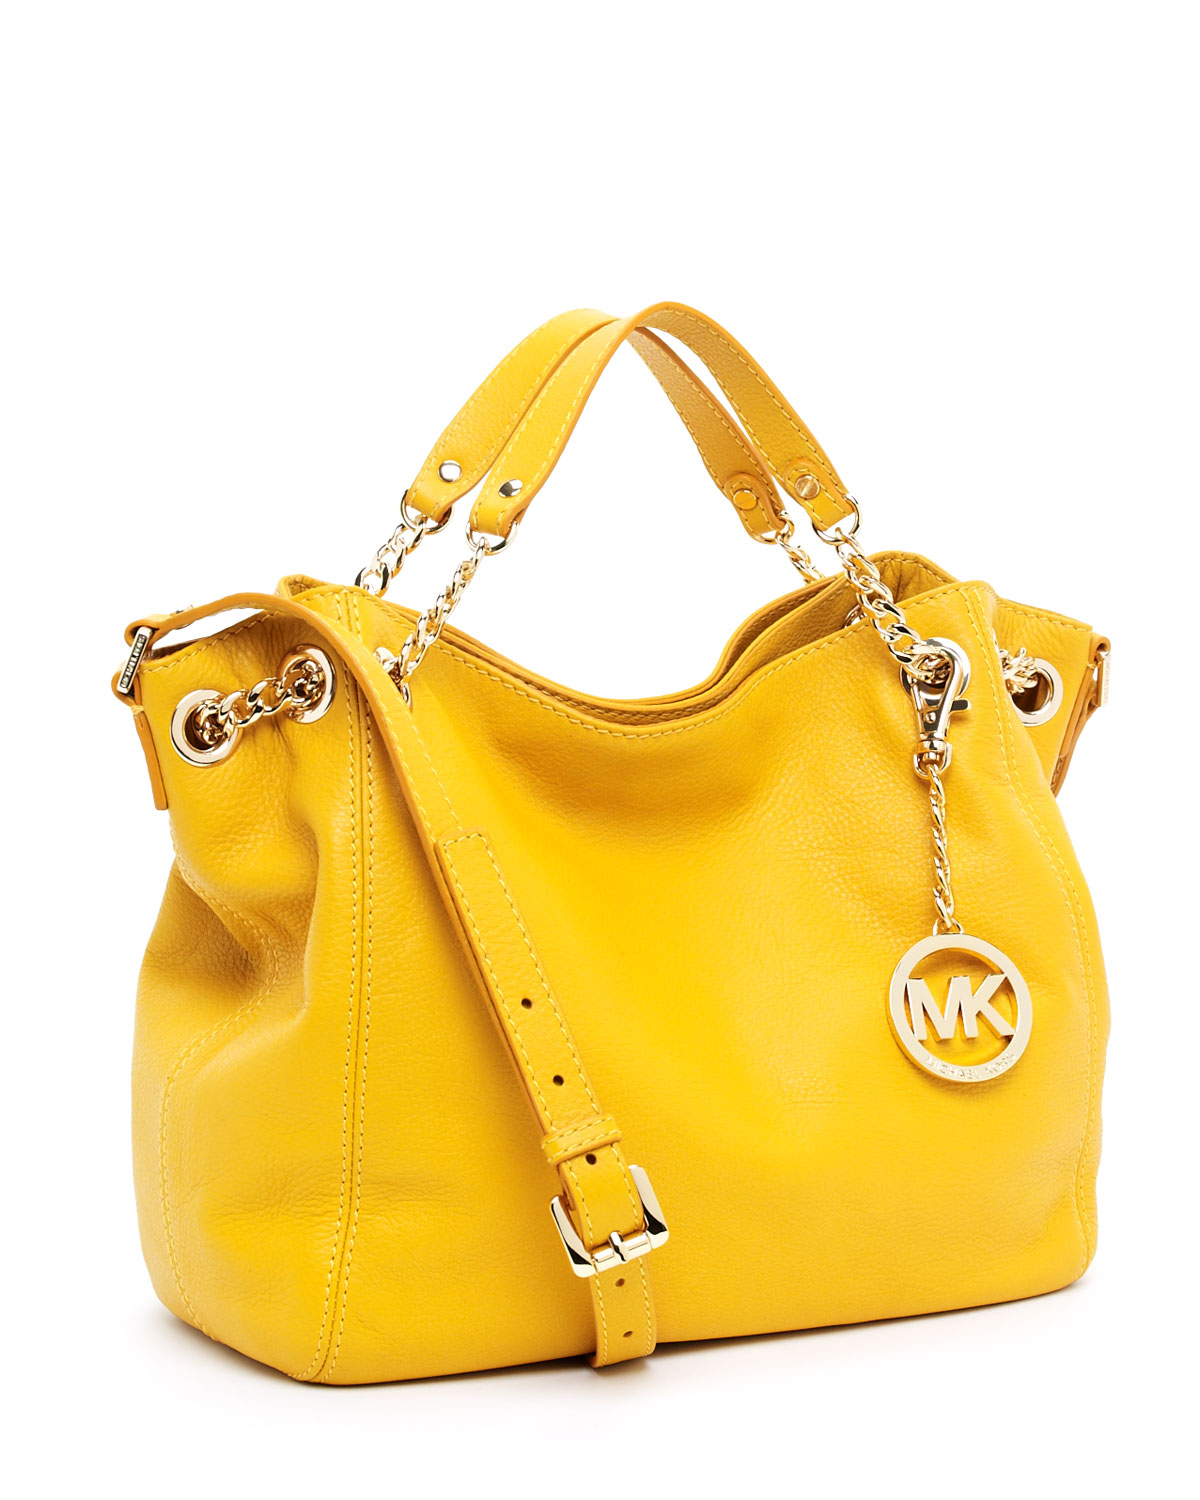 c6218776b052 Michael Kors Jet Set Chain Medium Gather Shoulder Tote in Yellow - Lyst